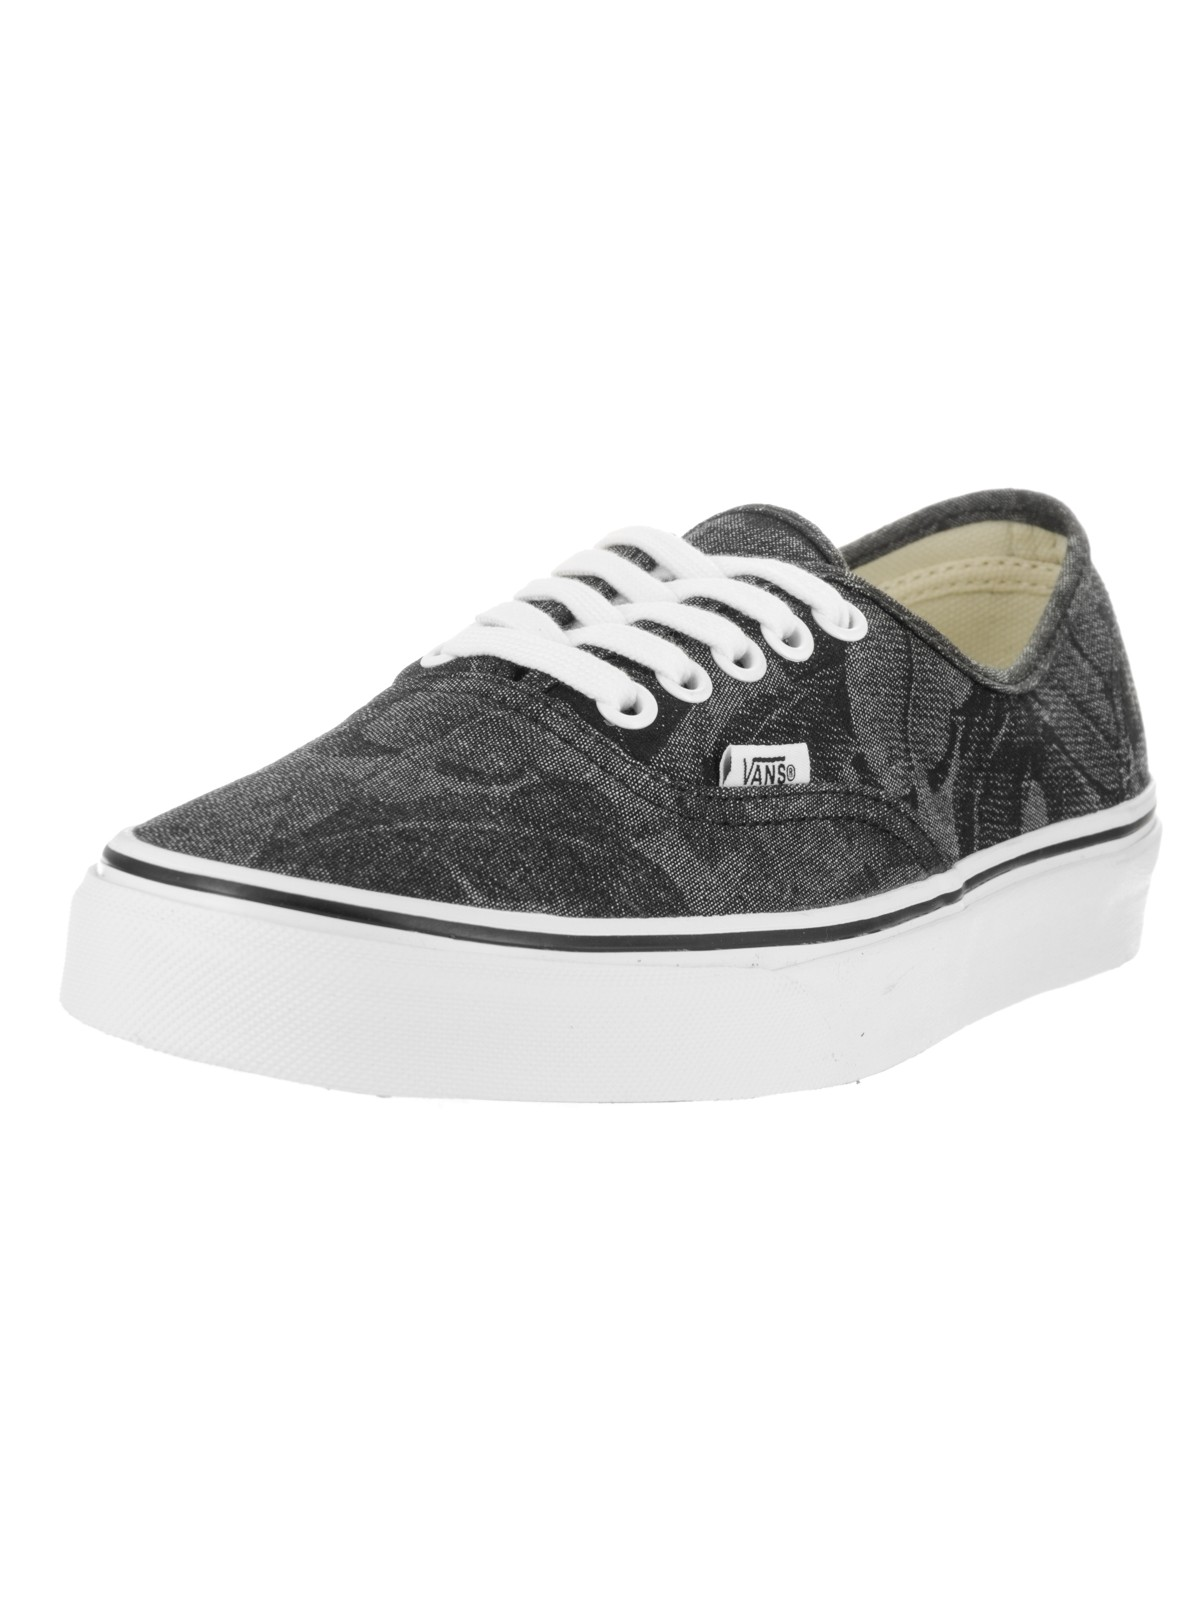 Vans Unisex Authentic (Chambray Leaves) Skate Shoe